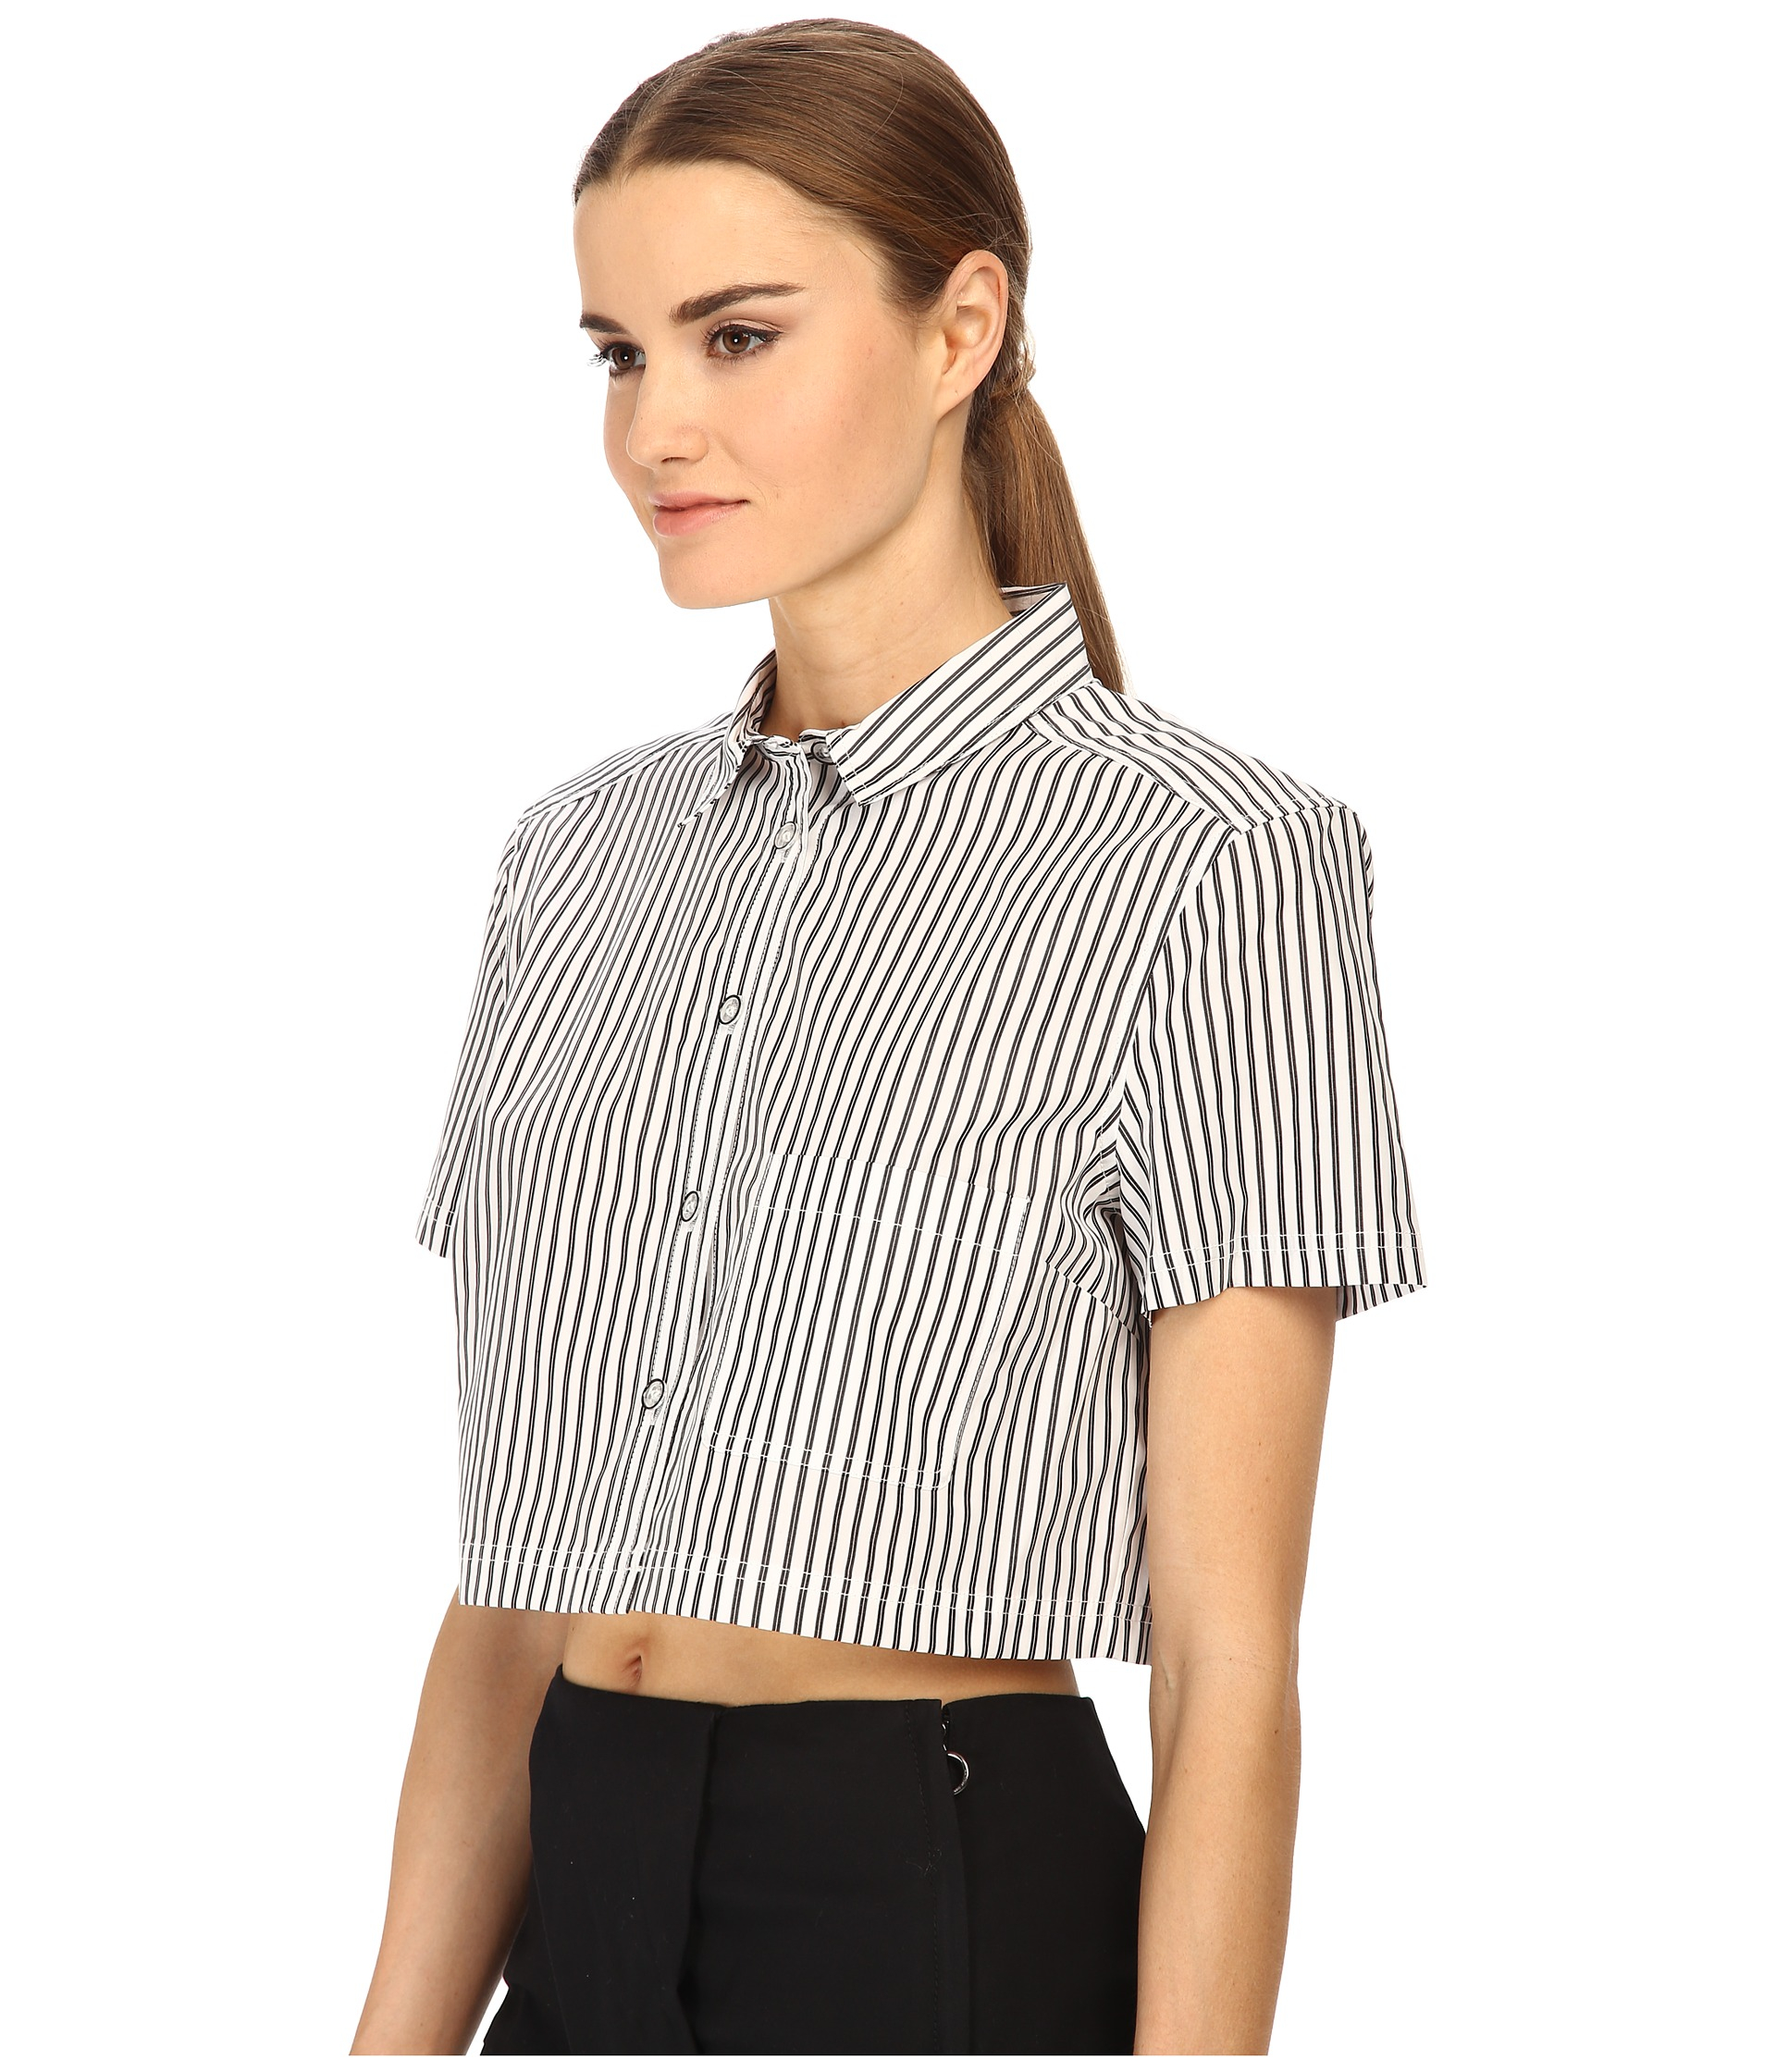 Marc by marc jacobs button up shirt crop in metallic lyst for Silver metallic shirt women s